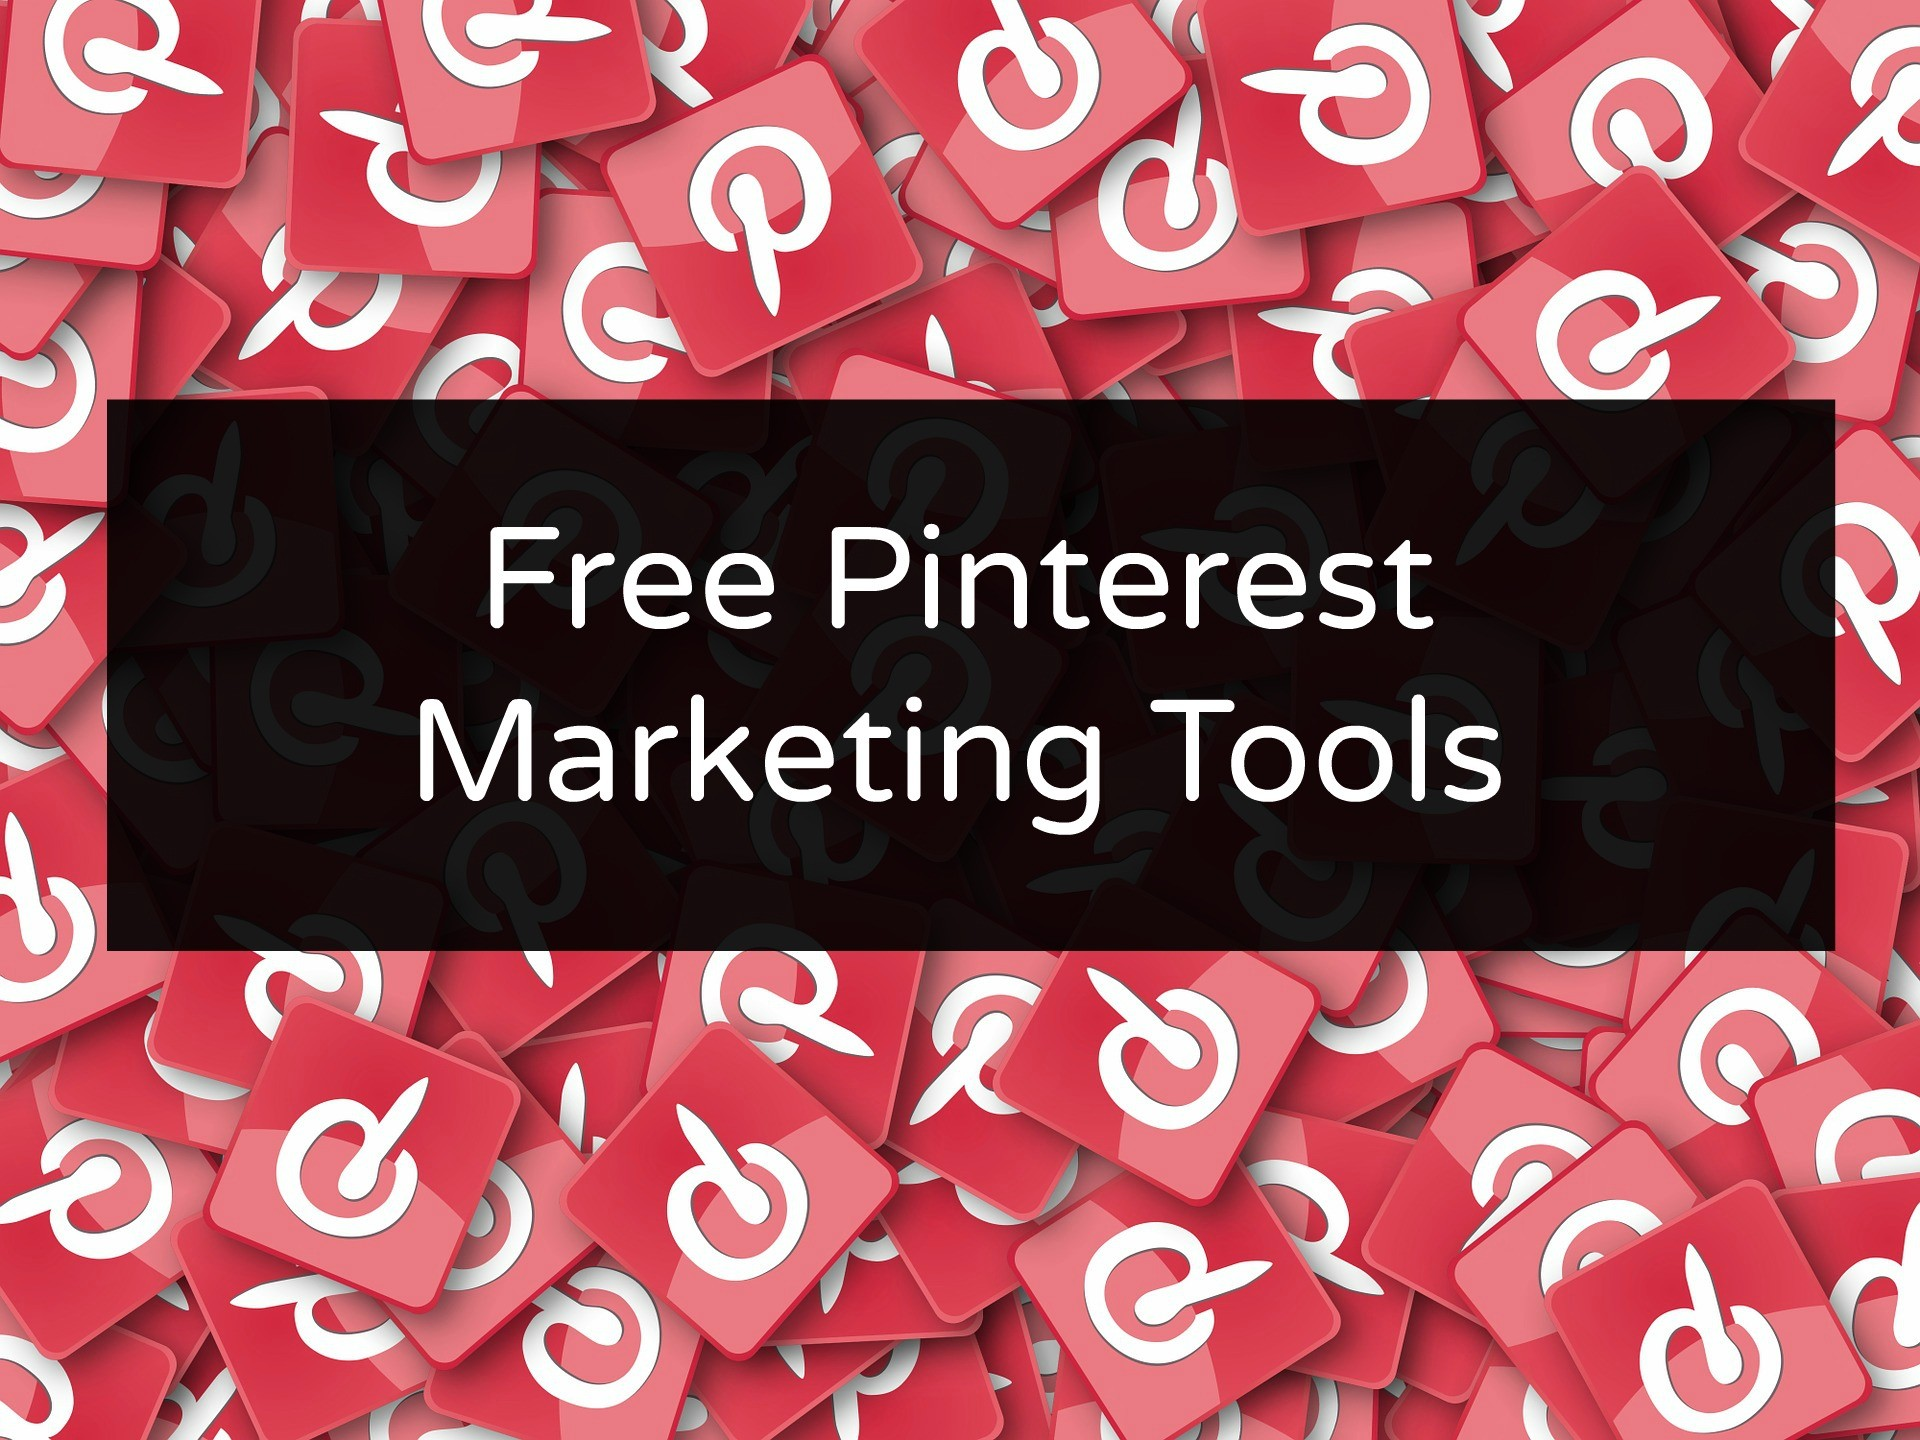 Pinterest Marketing Tools